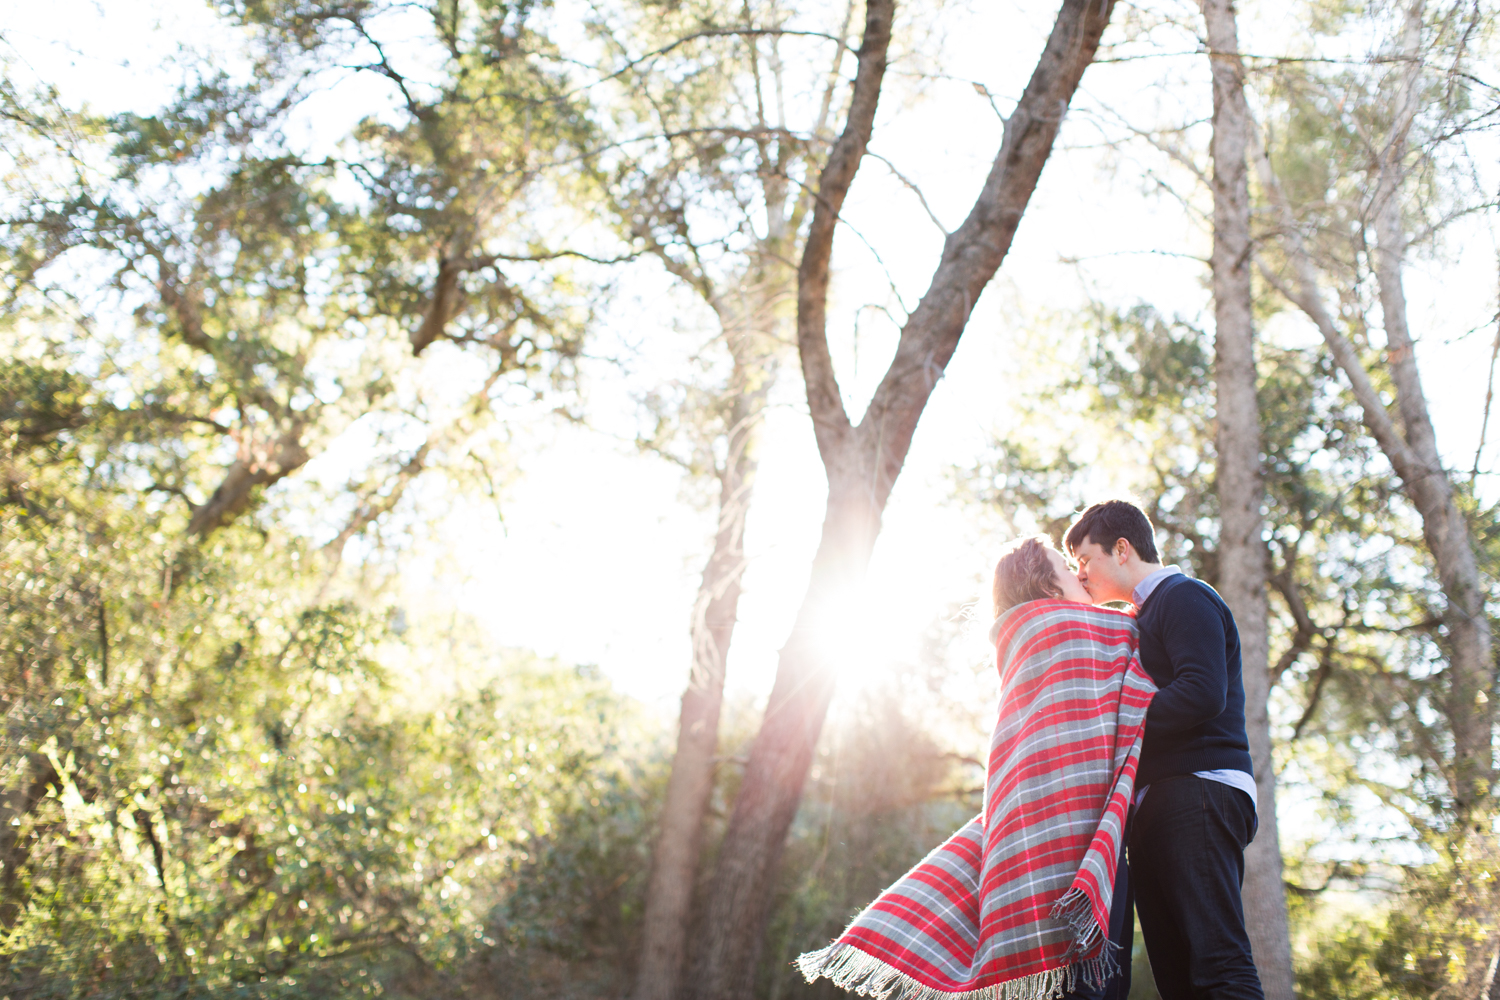 griffith-park-engagement-photography-110.jpg